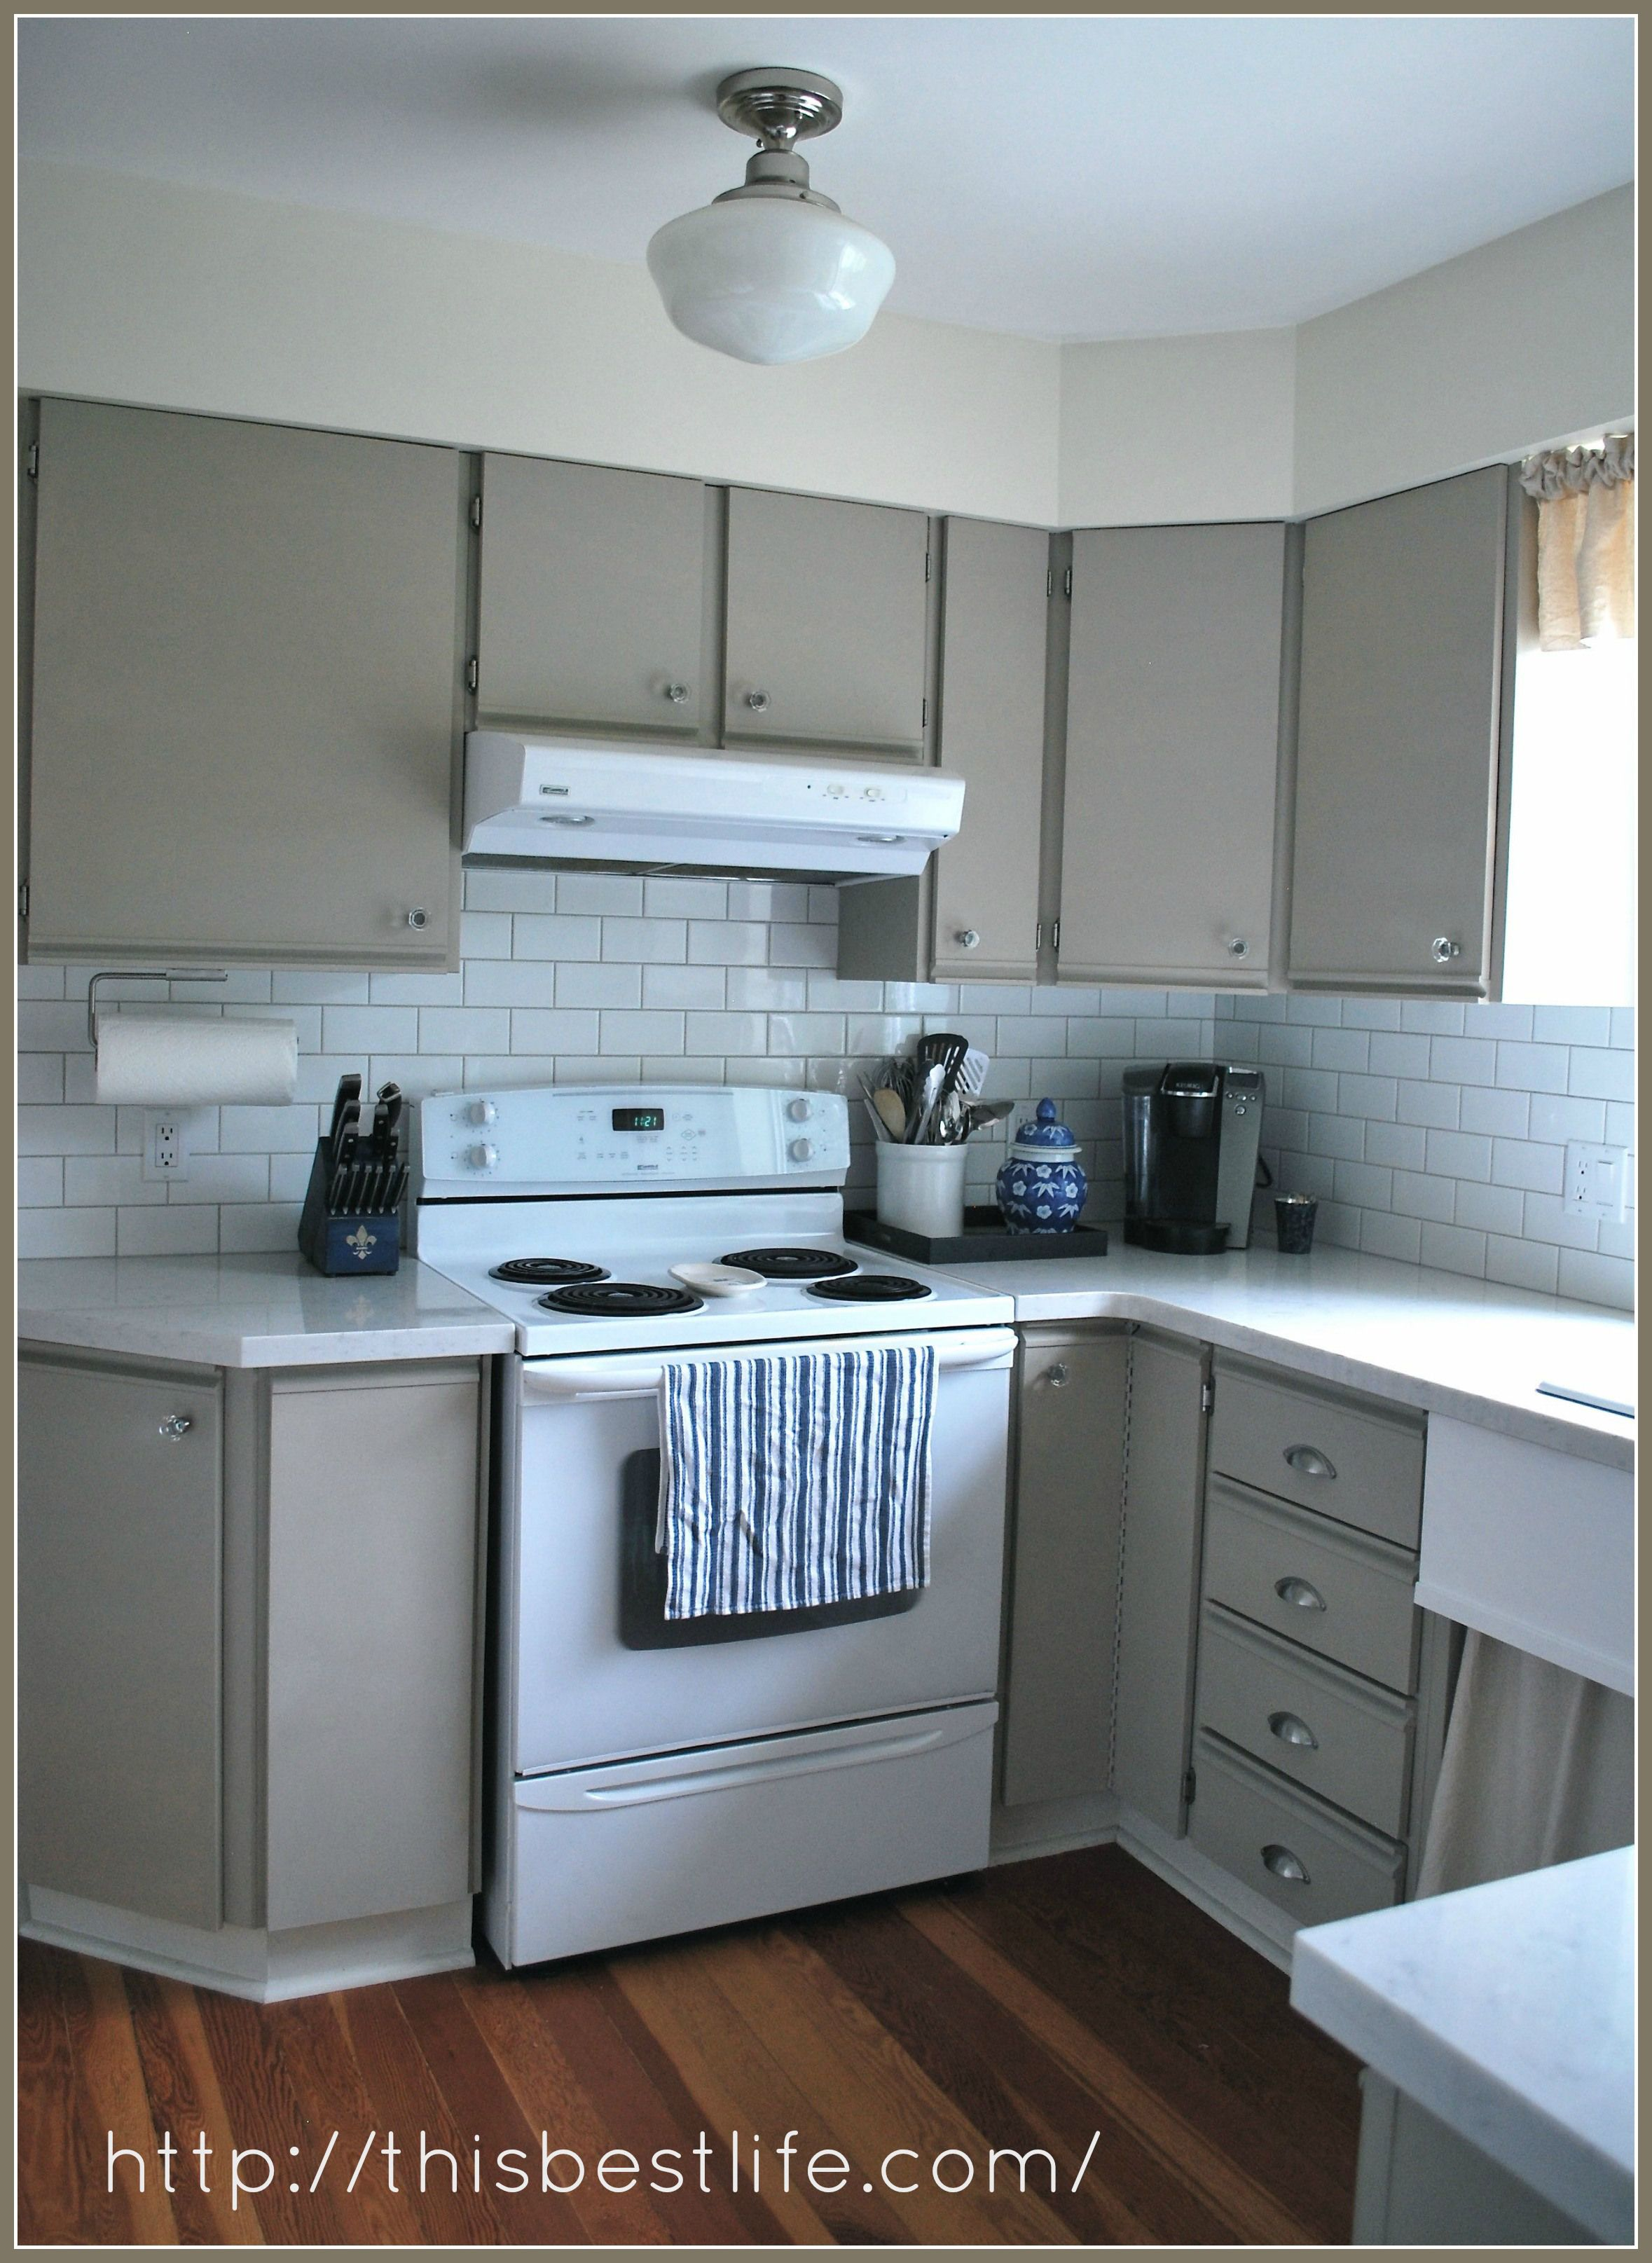 A french touch revamping and repurposing vintage Revamp old kitchen cabinets